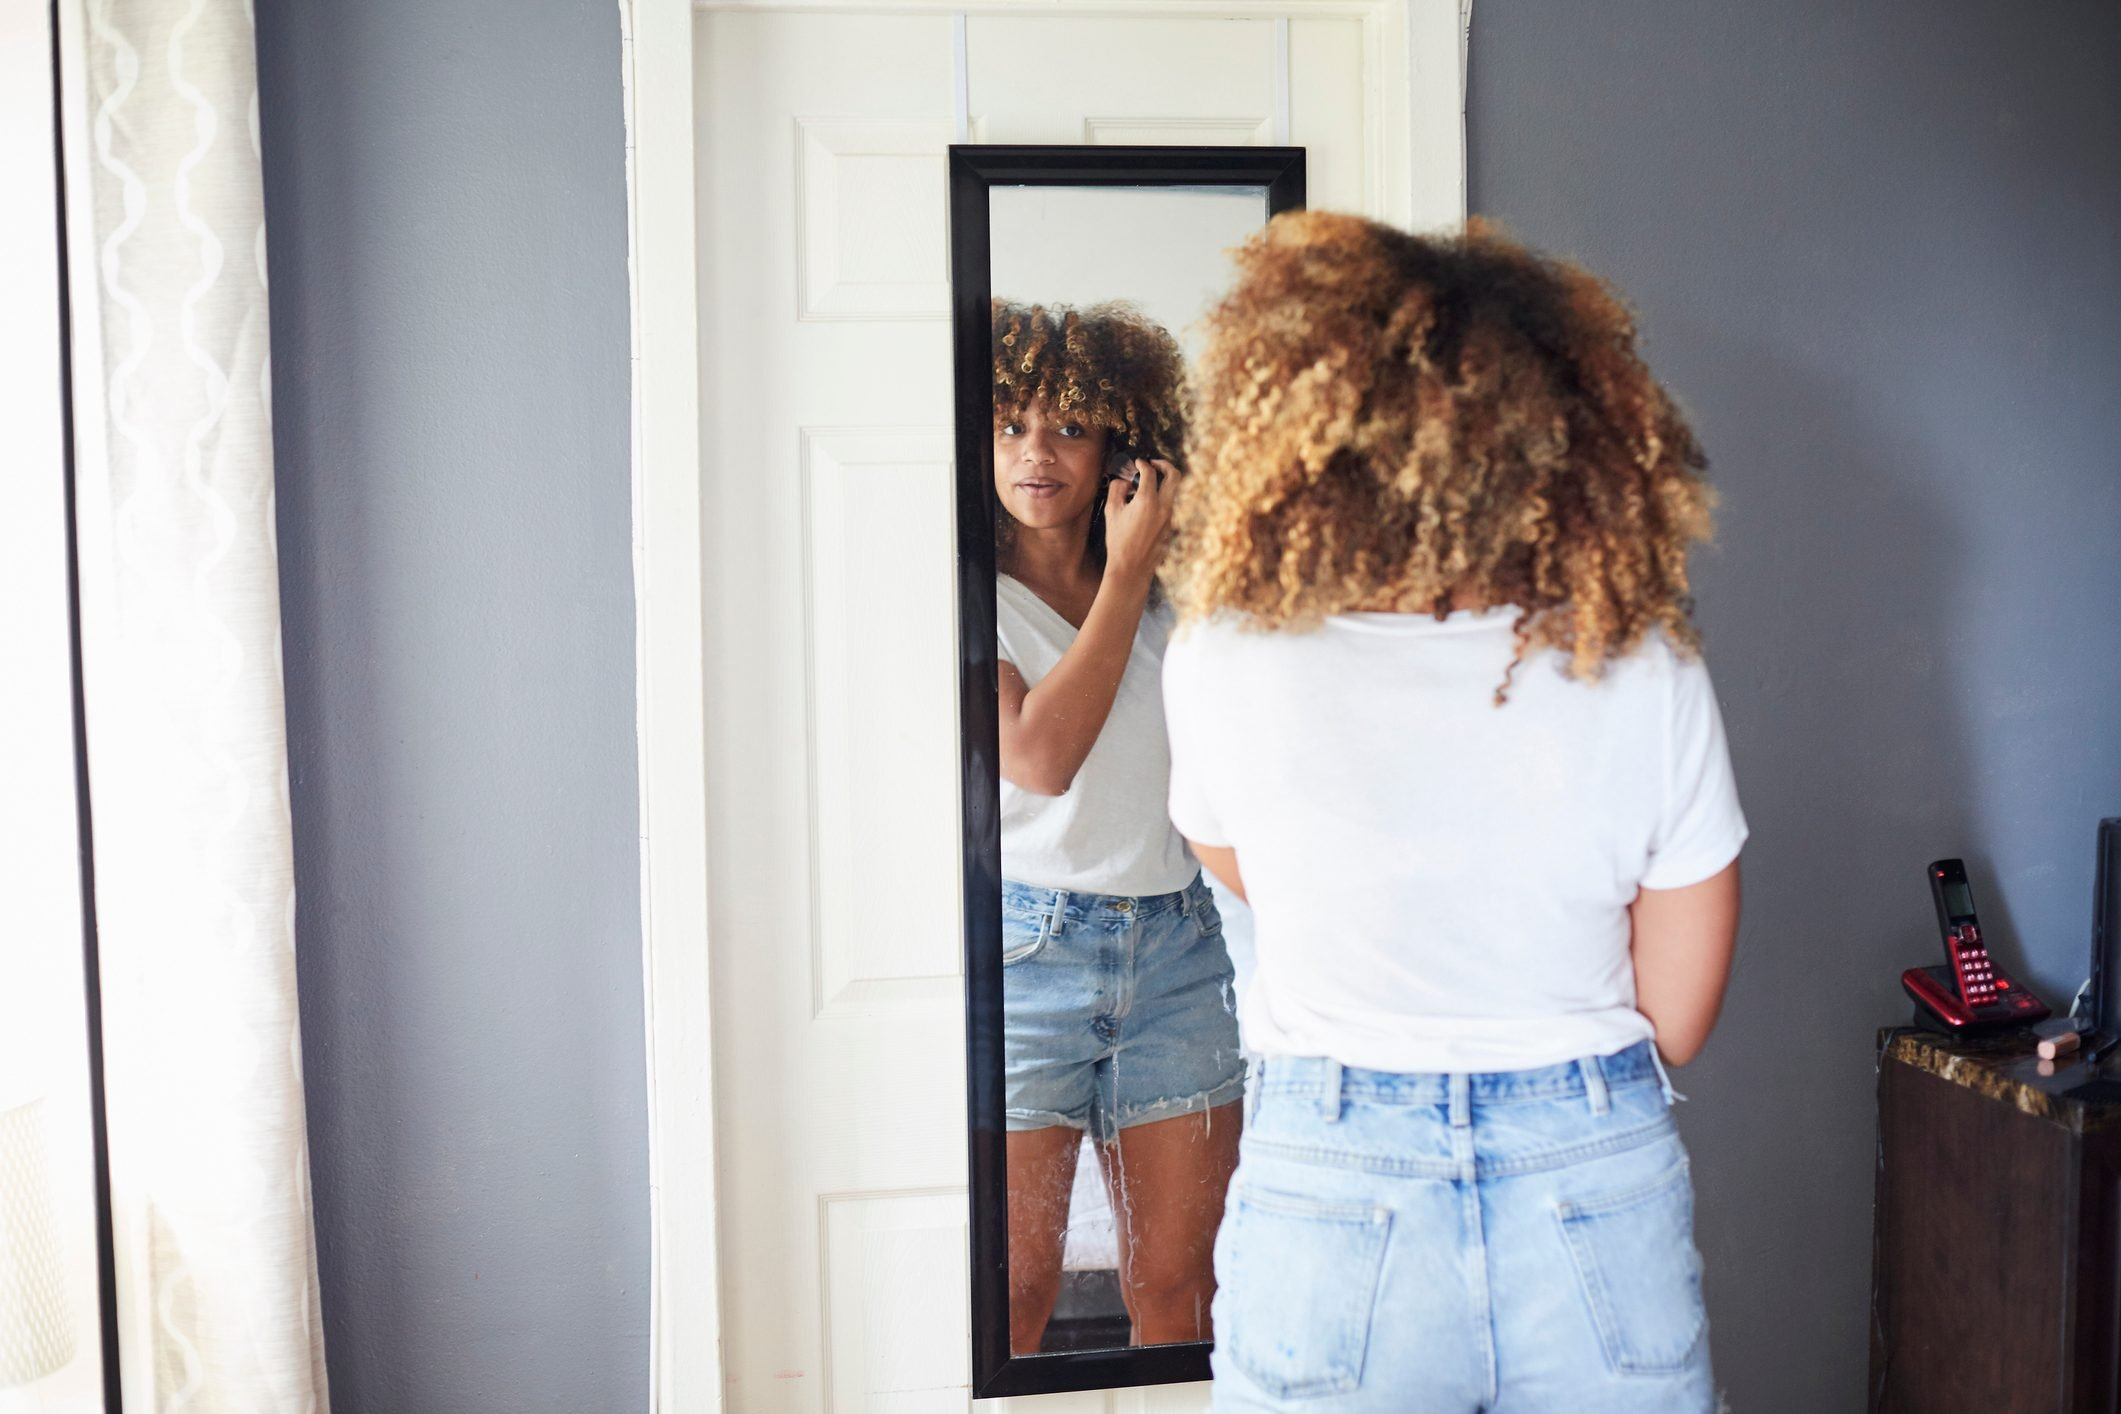 Black woman examining hair in mirror